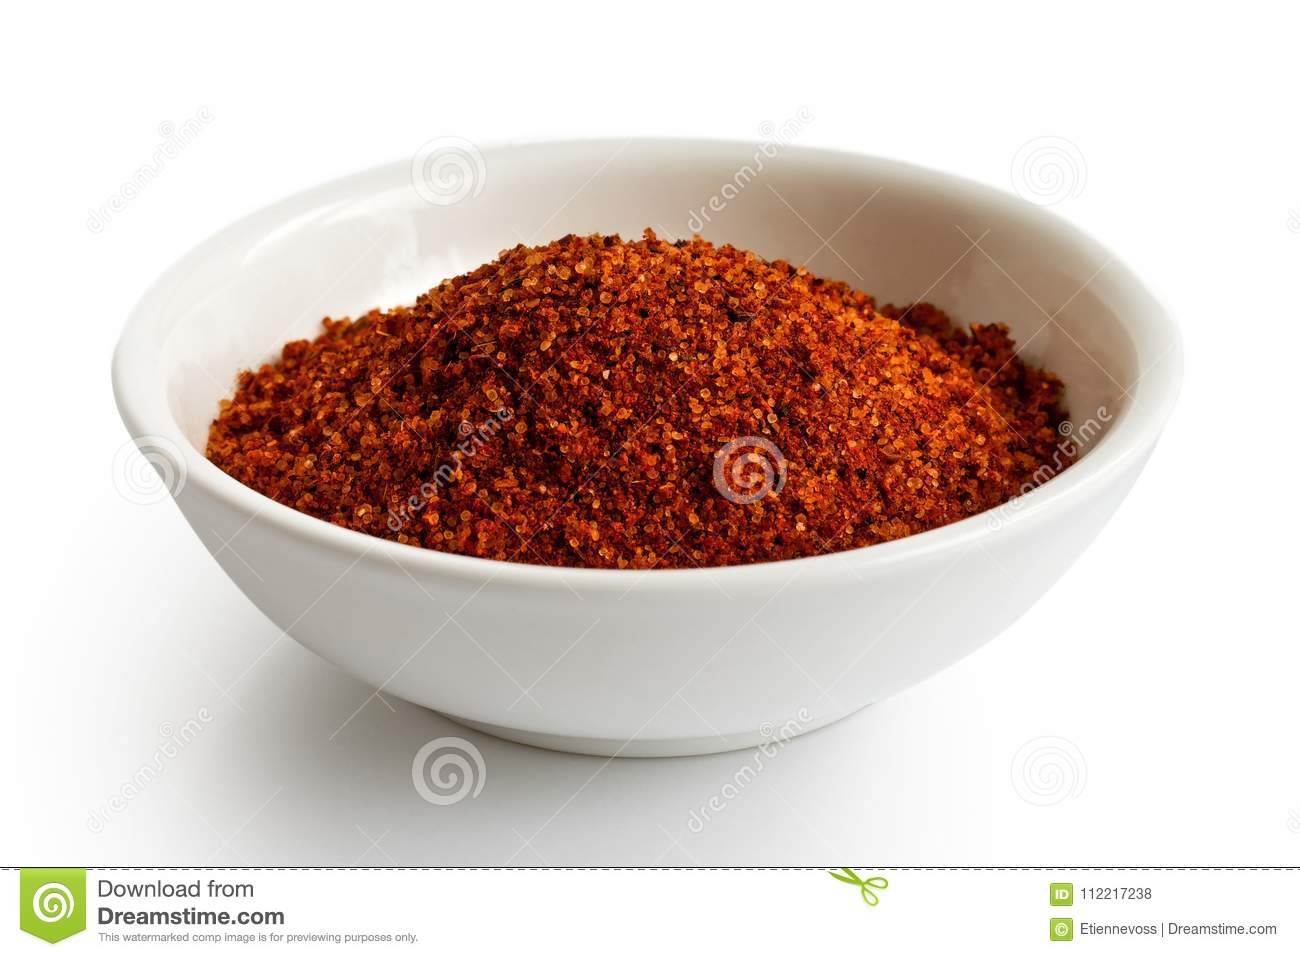 Red bbq spice mix in white ceramic bowl.